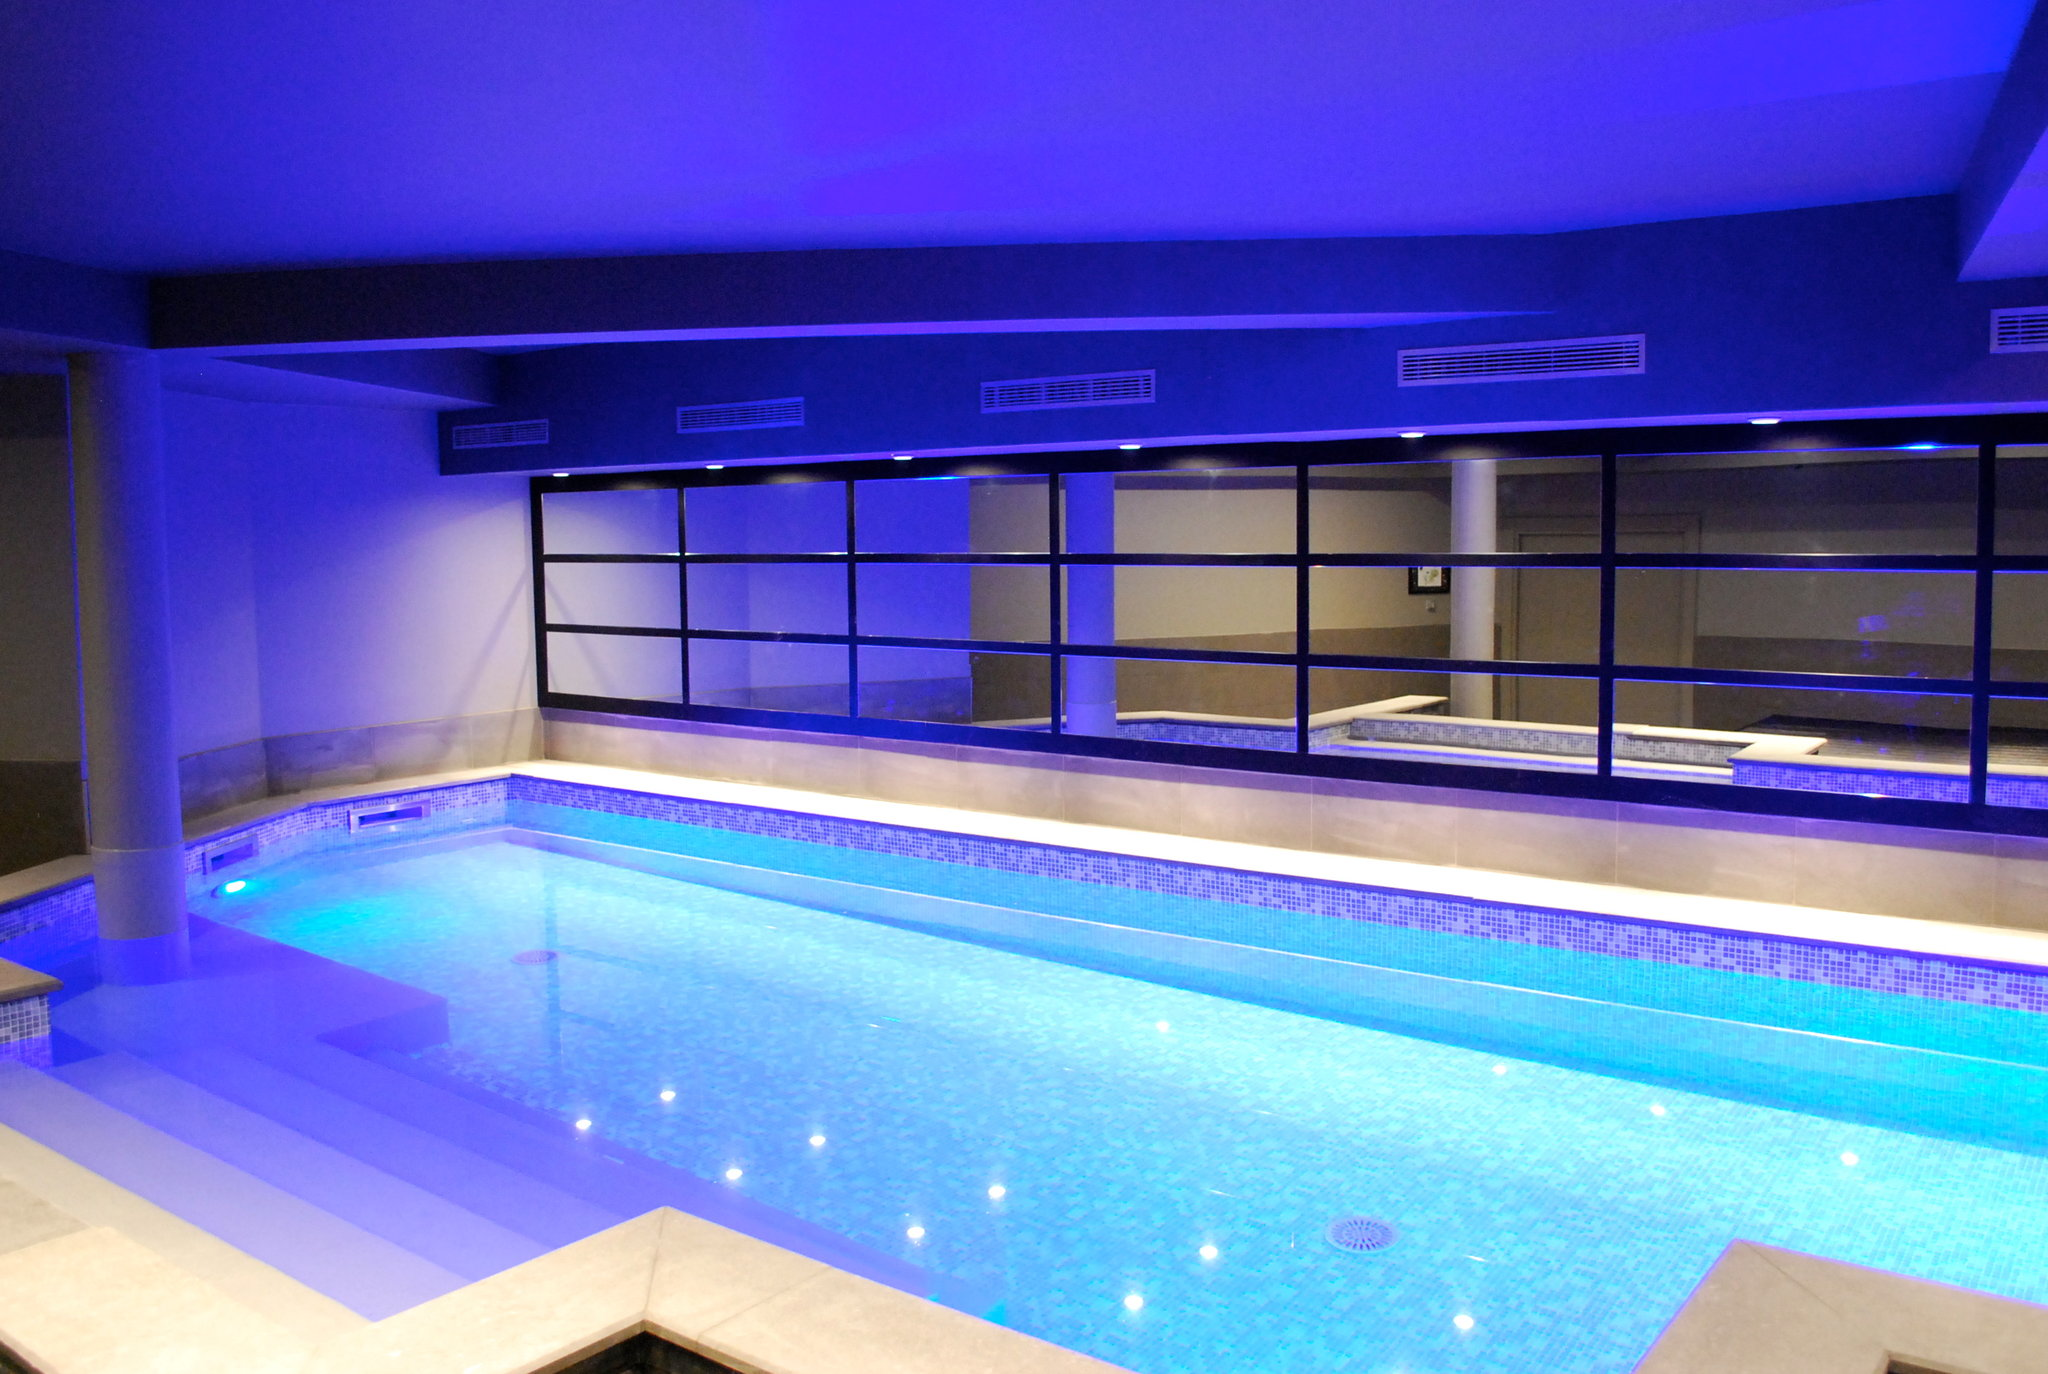 Voyages chamb ry d s 171 s jours pas chers pour vos for Piscine de chambery